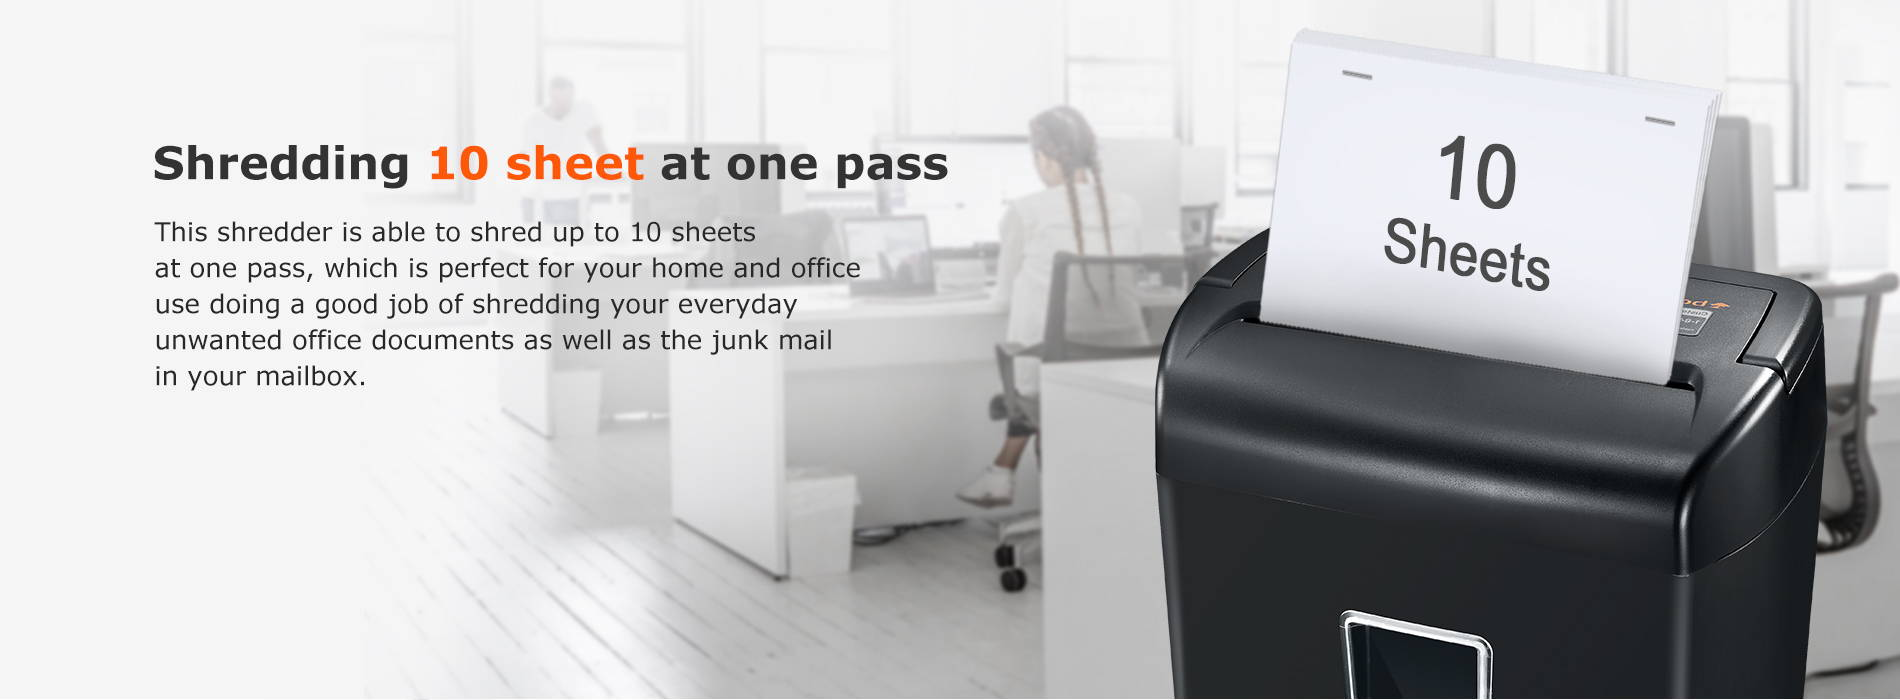 Shredding 10 sheet at one pass This shredder is able to shred up to 10 sheets at one pass, which is perfect for your home and office use doing a good job of shredding your everyday unwanted office documents as well as the junk mail in your mailbox.